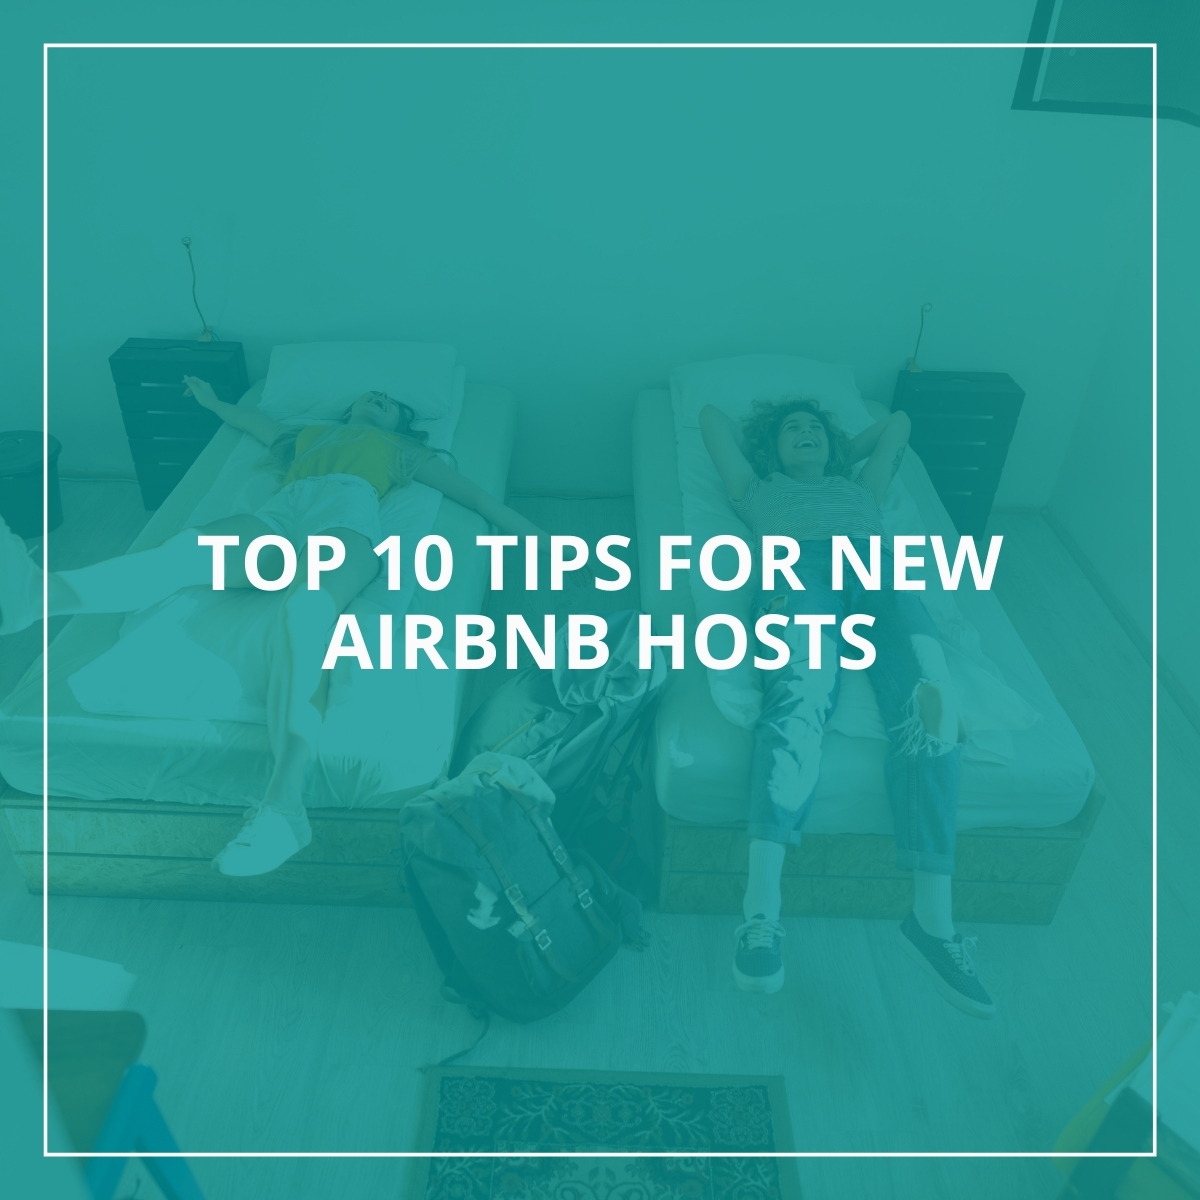 top 10 tips for new airbnb hosts